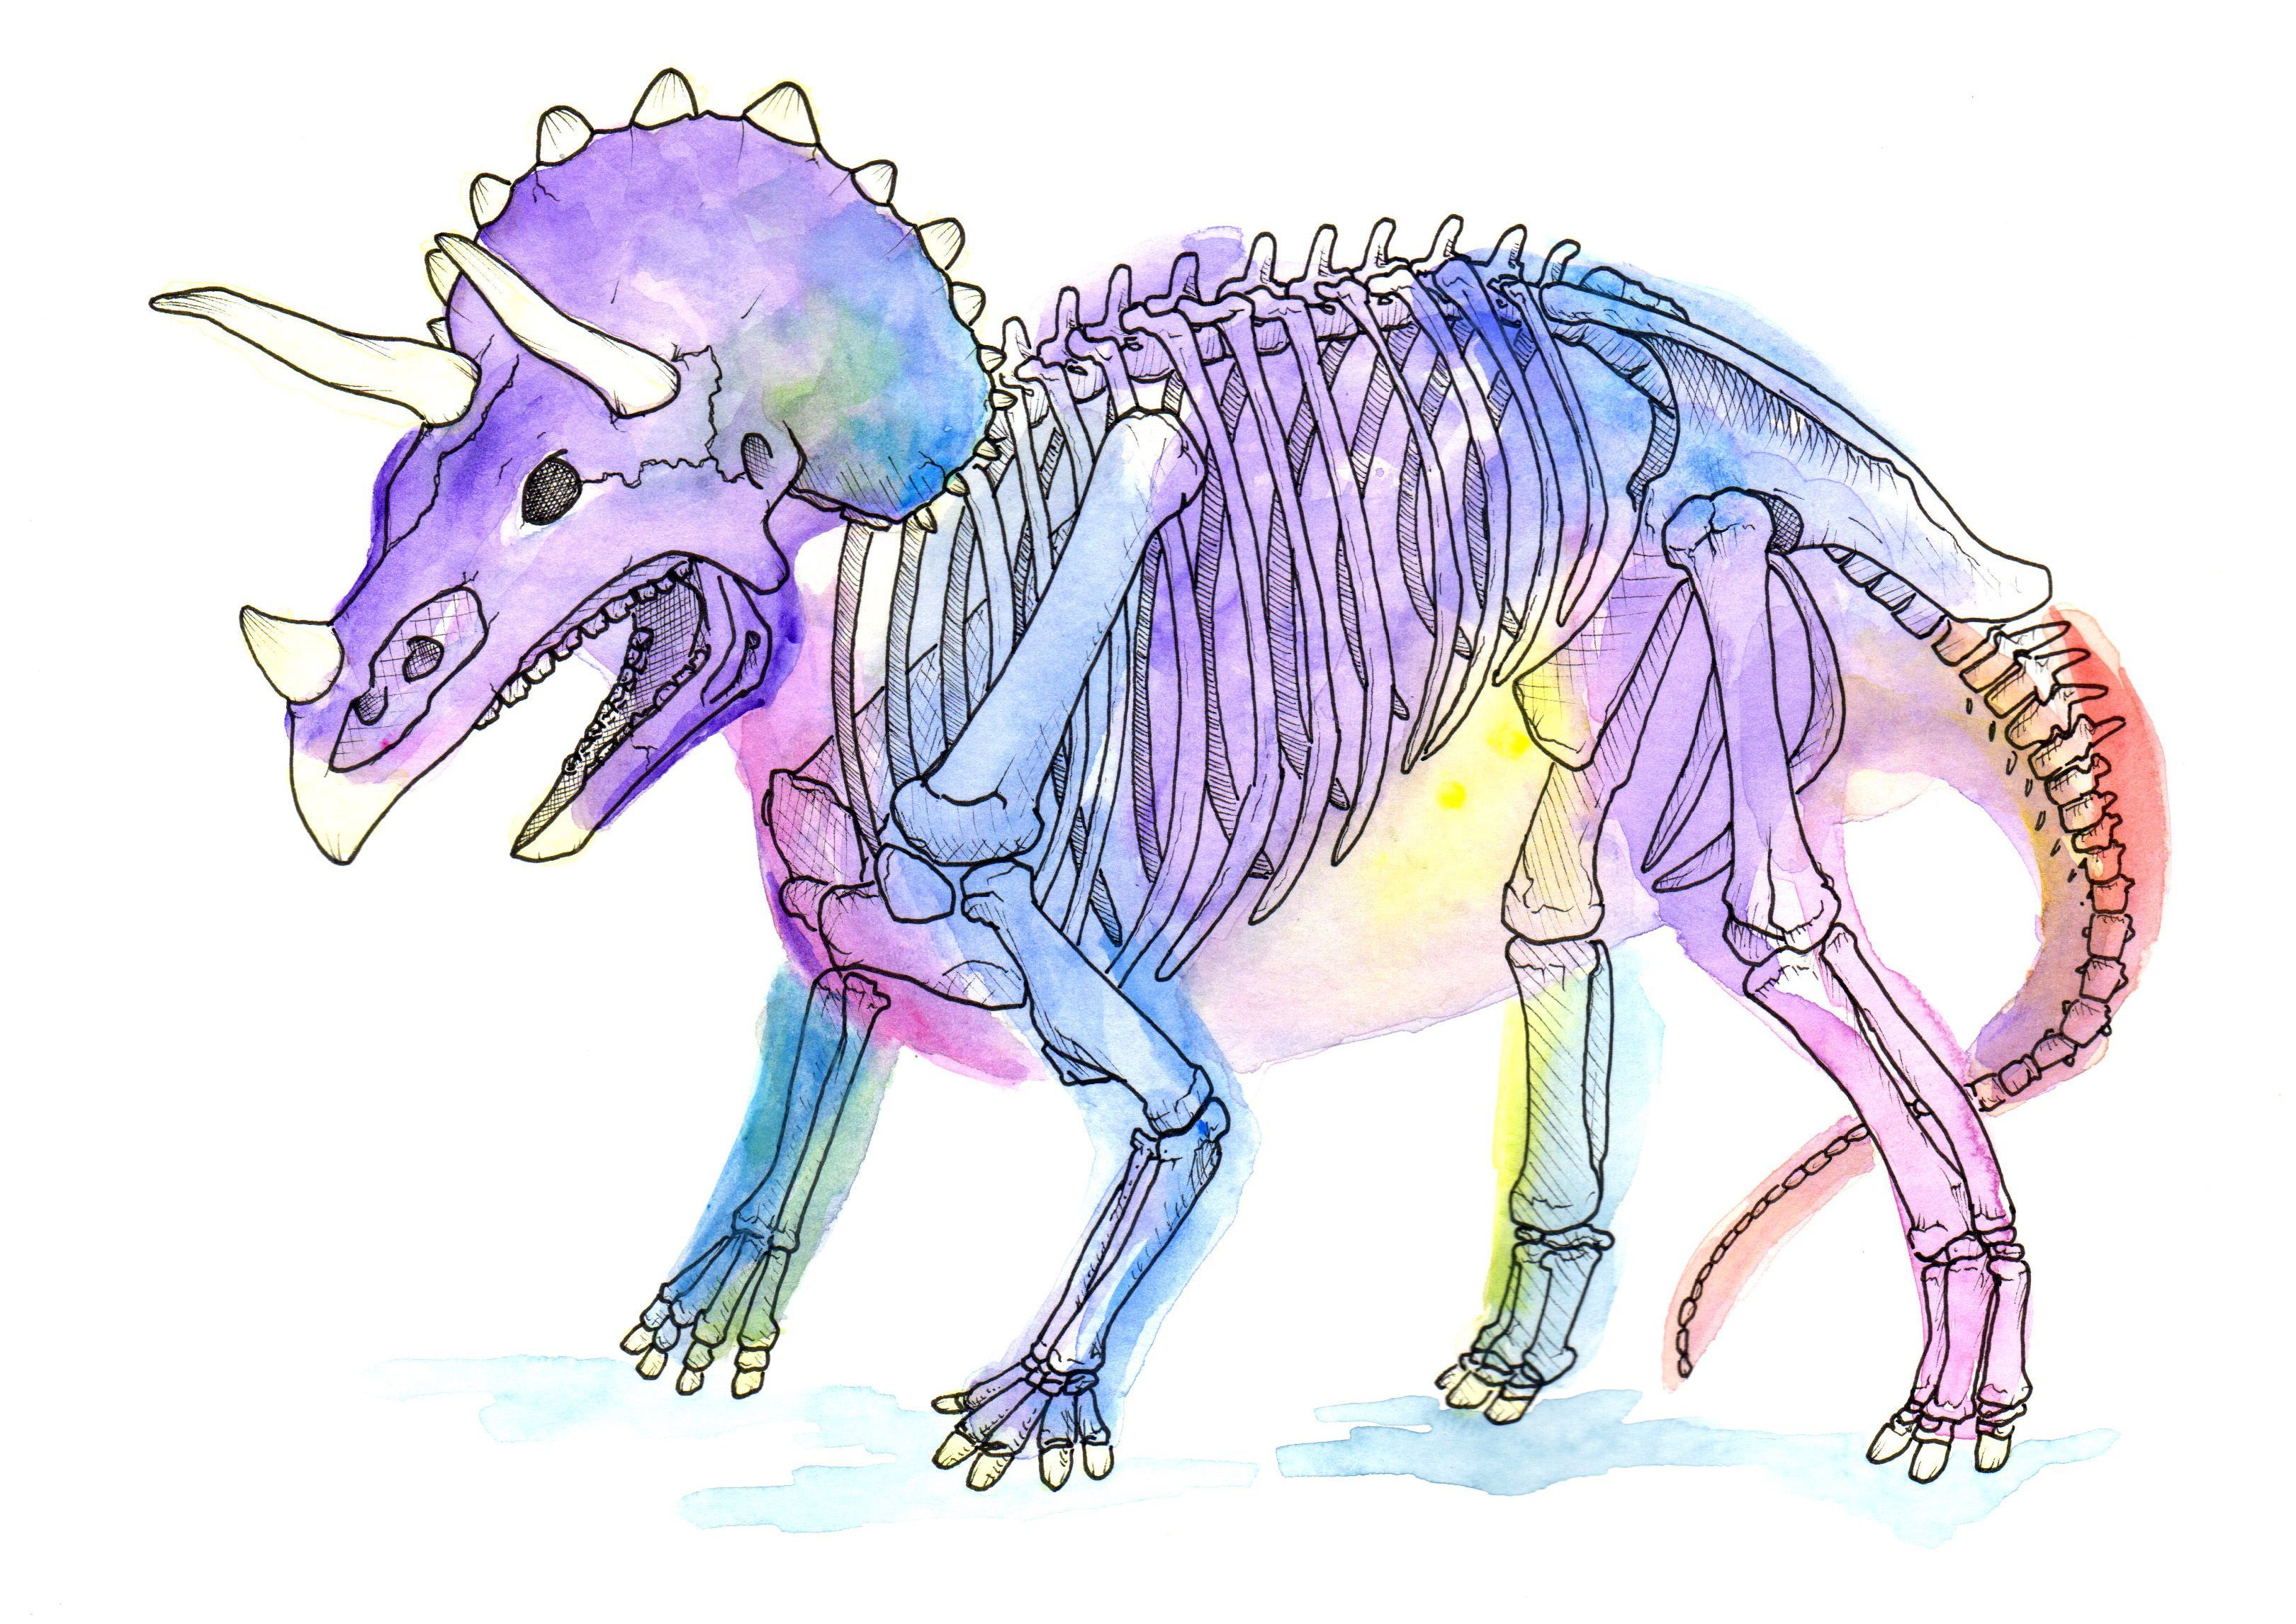 X-RAY Dinosaurs and Other Prehistoric Creatures - Paperback #prehistoriccreatures Triceratops original watercolor, signed by artist. 9 x 12. This illustration was originally created for the book X-Ray Dinosaurs and Other Prehistoric Creatures. #prehistoriccreatures